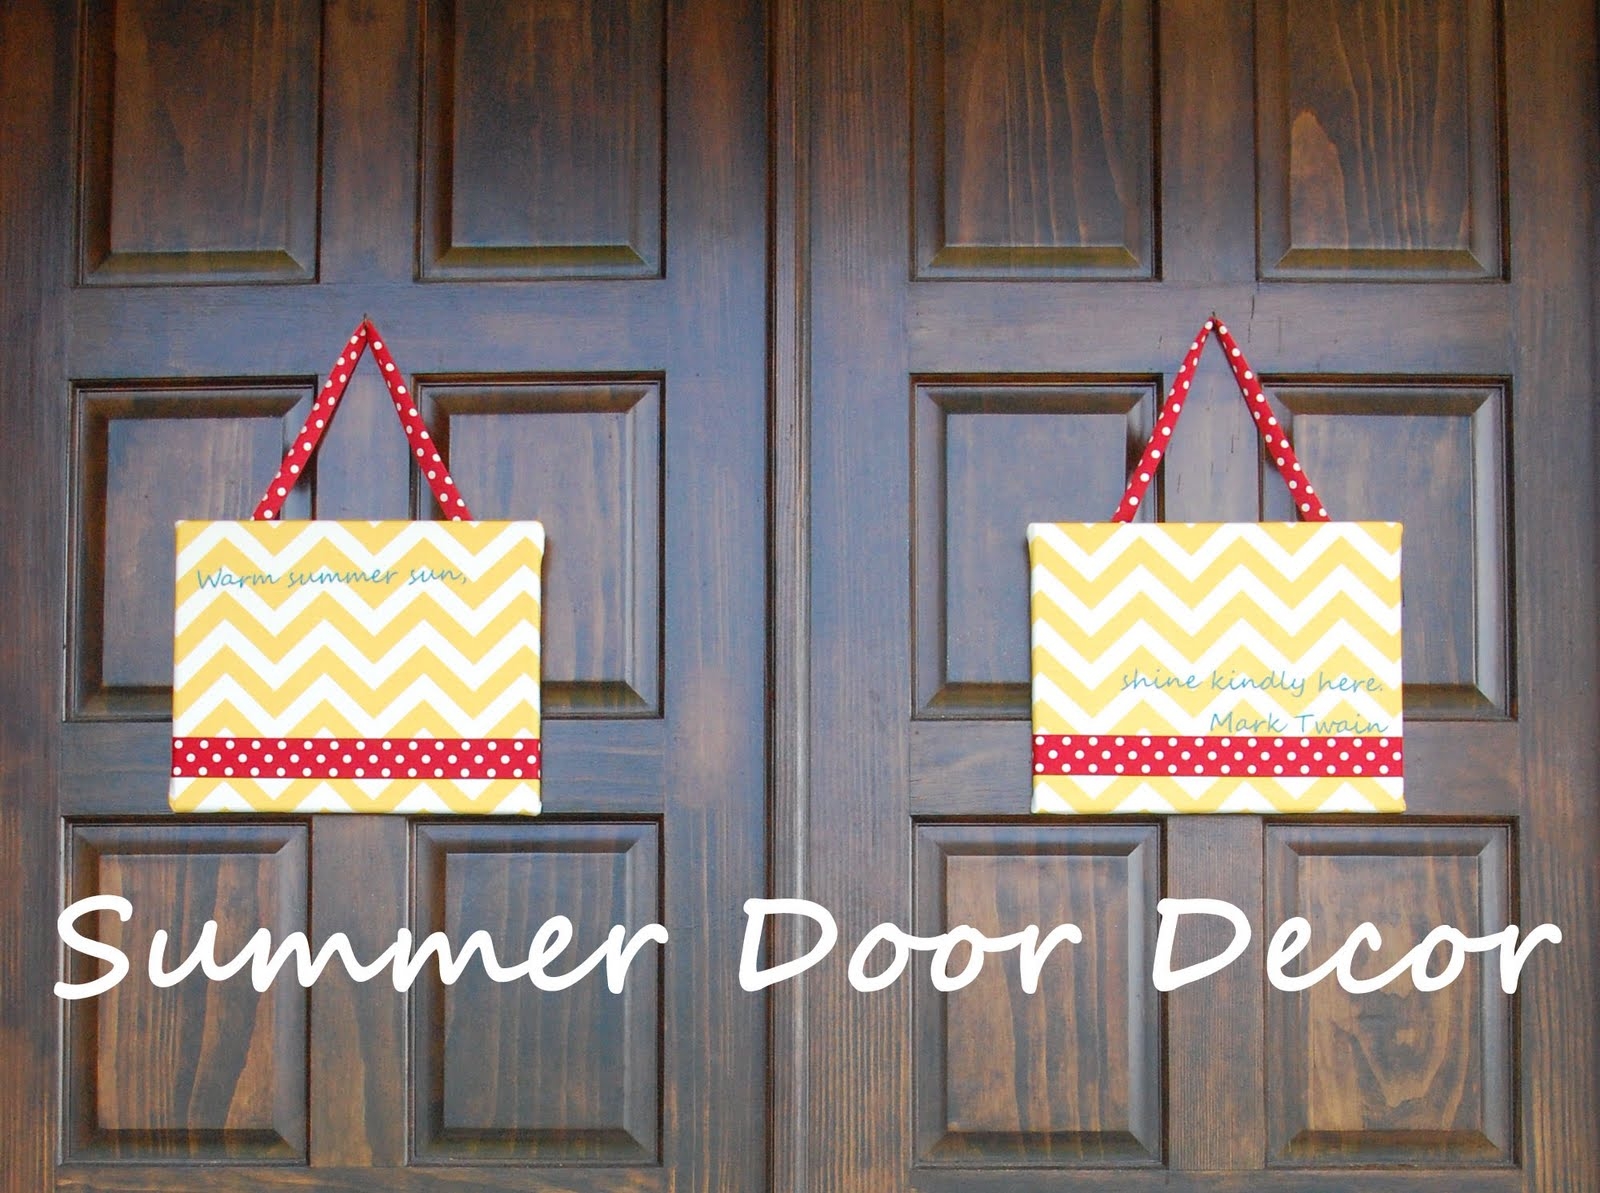 front door decor summerRandom Thoughts of a SUPERMOM Summer Door Decor